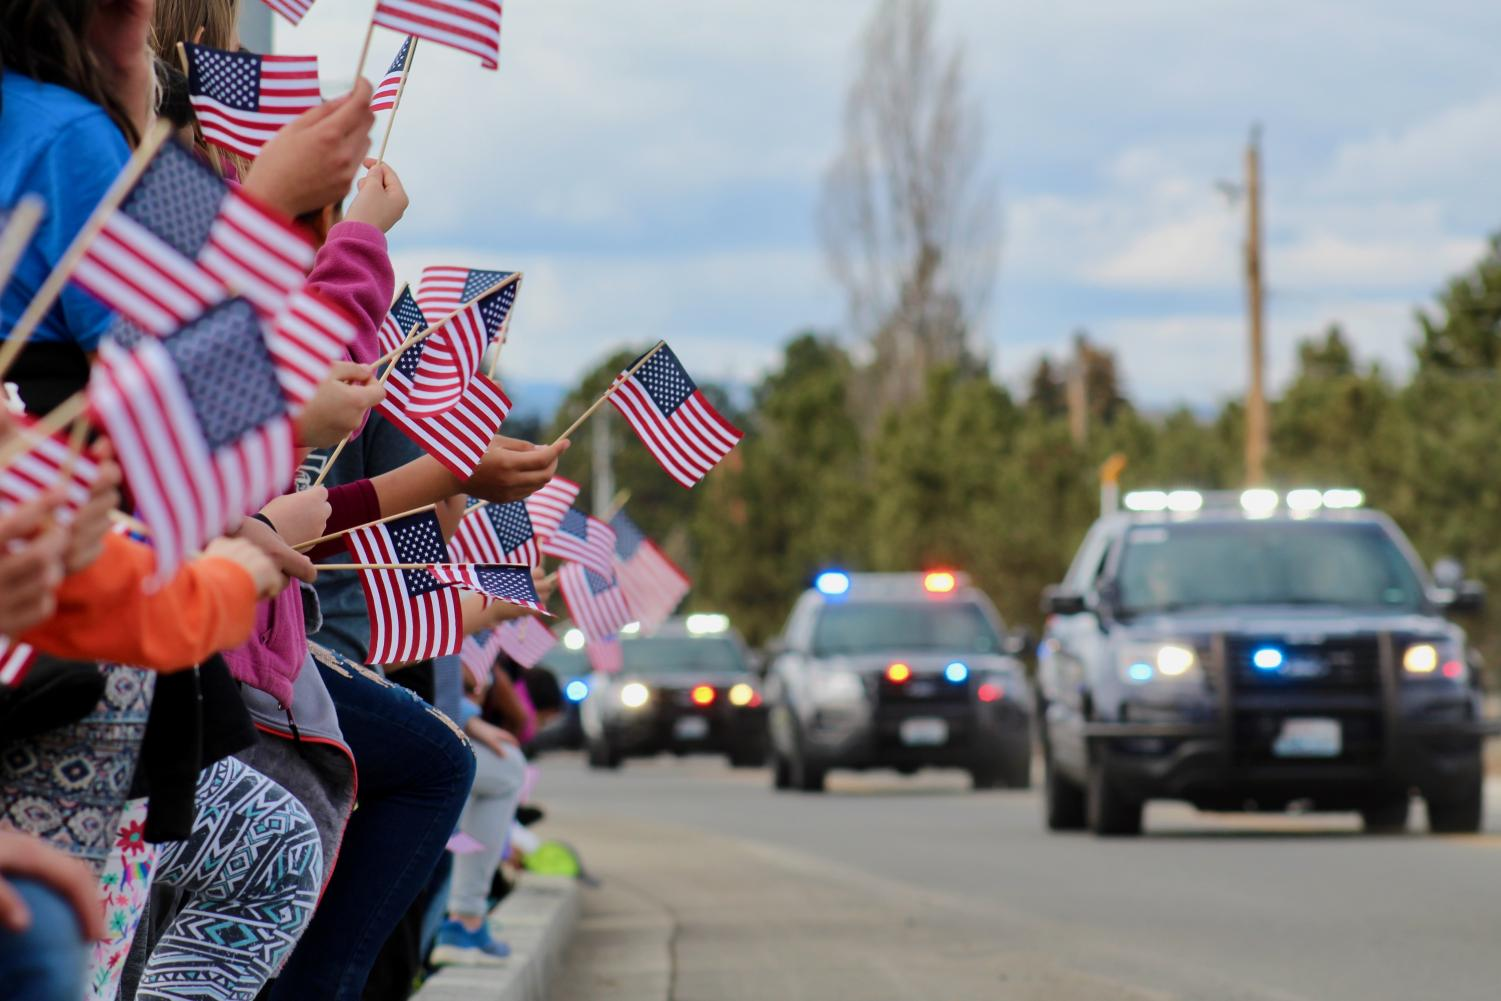 Students from Valley View Elementary stood silently on the sidewalks as the procession for Deputy Ryan Thompson passed by. Many students held American flags.